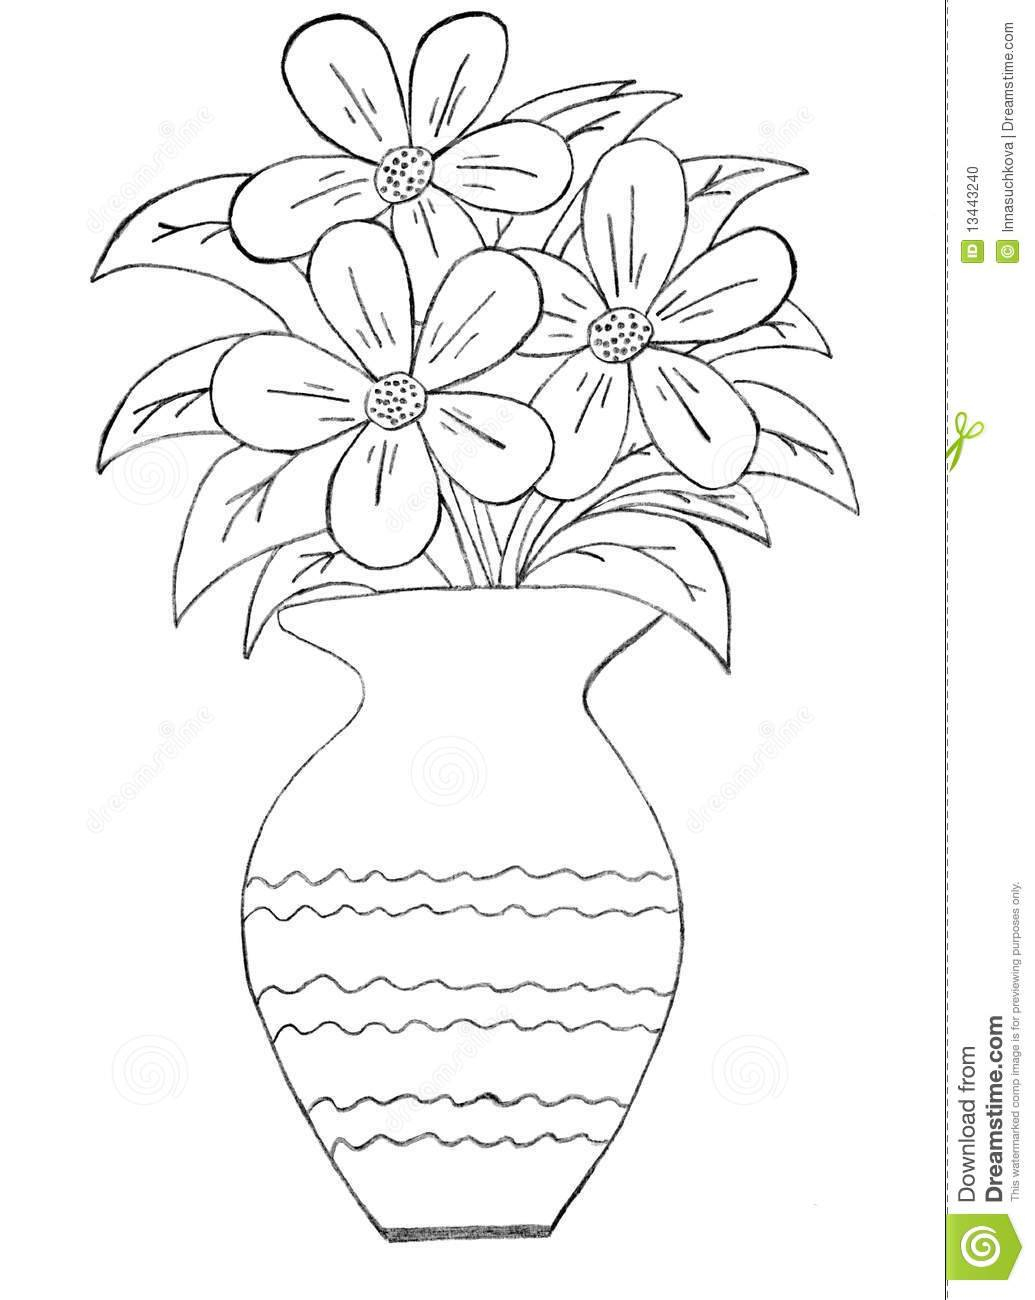 1035x1300 Easy Drawings Of Flowers In A Vase Step By Step